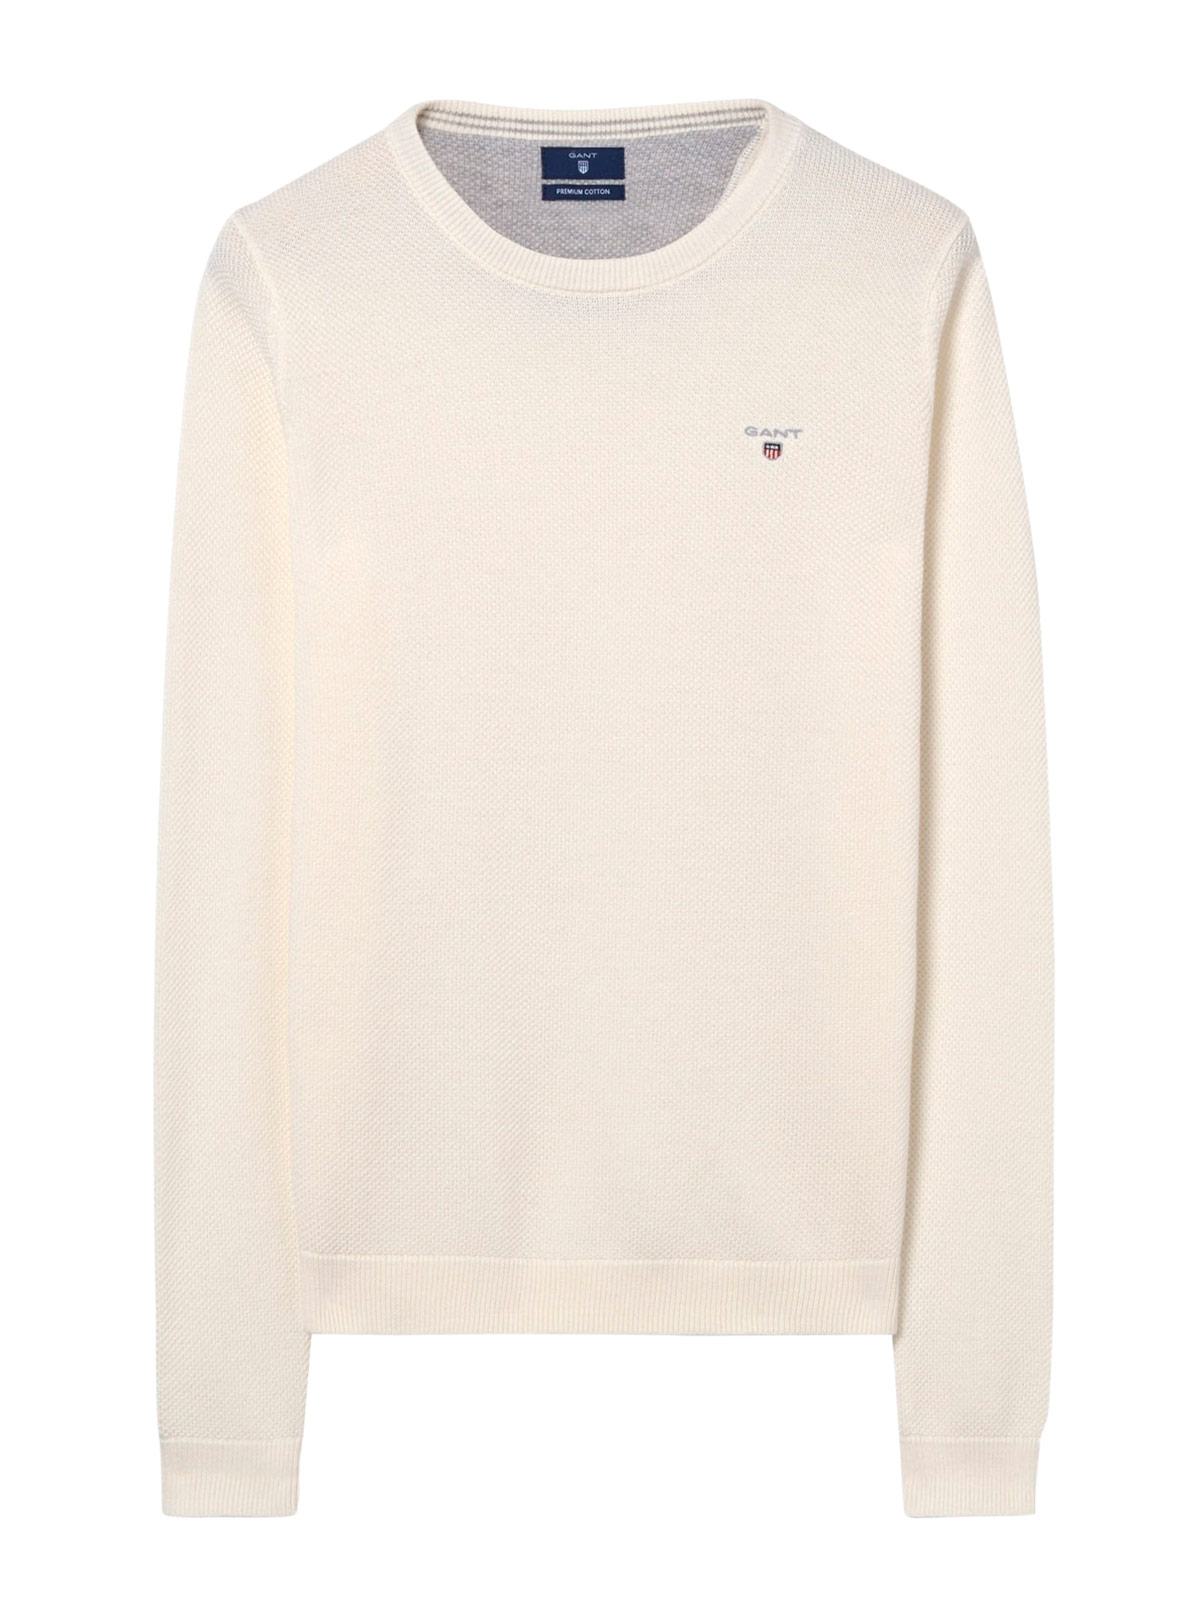 discount sale official images closer at GANT Women's Crewneck Sweater